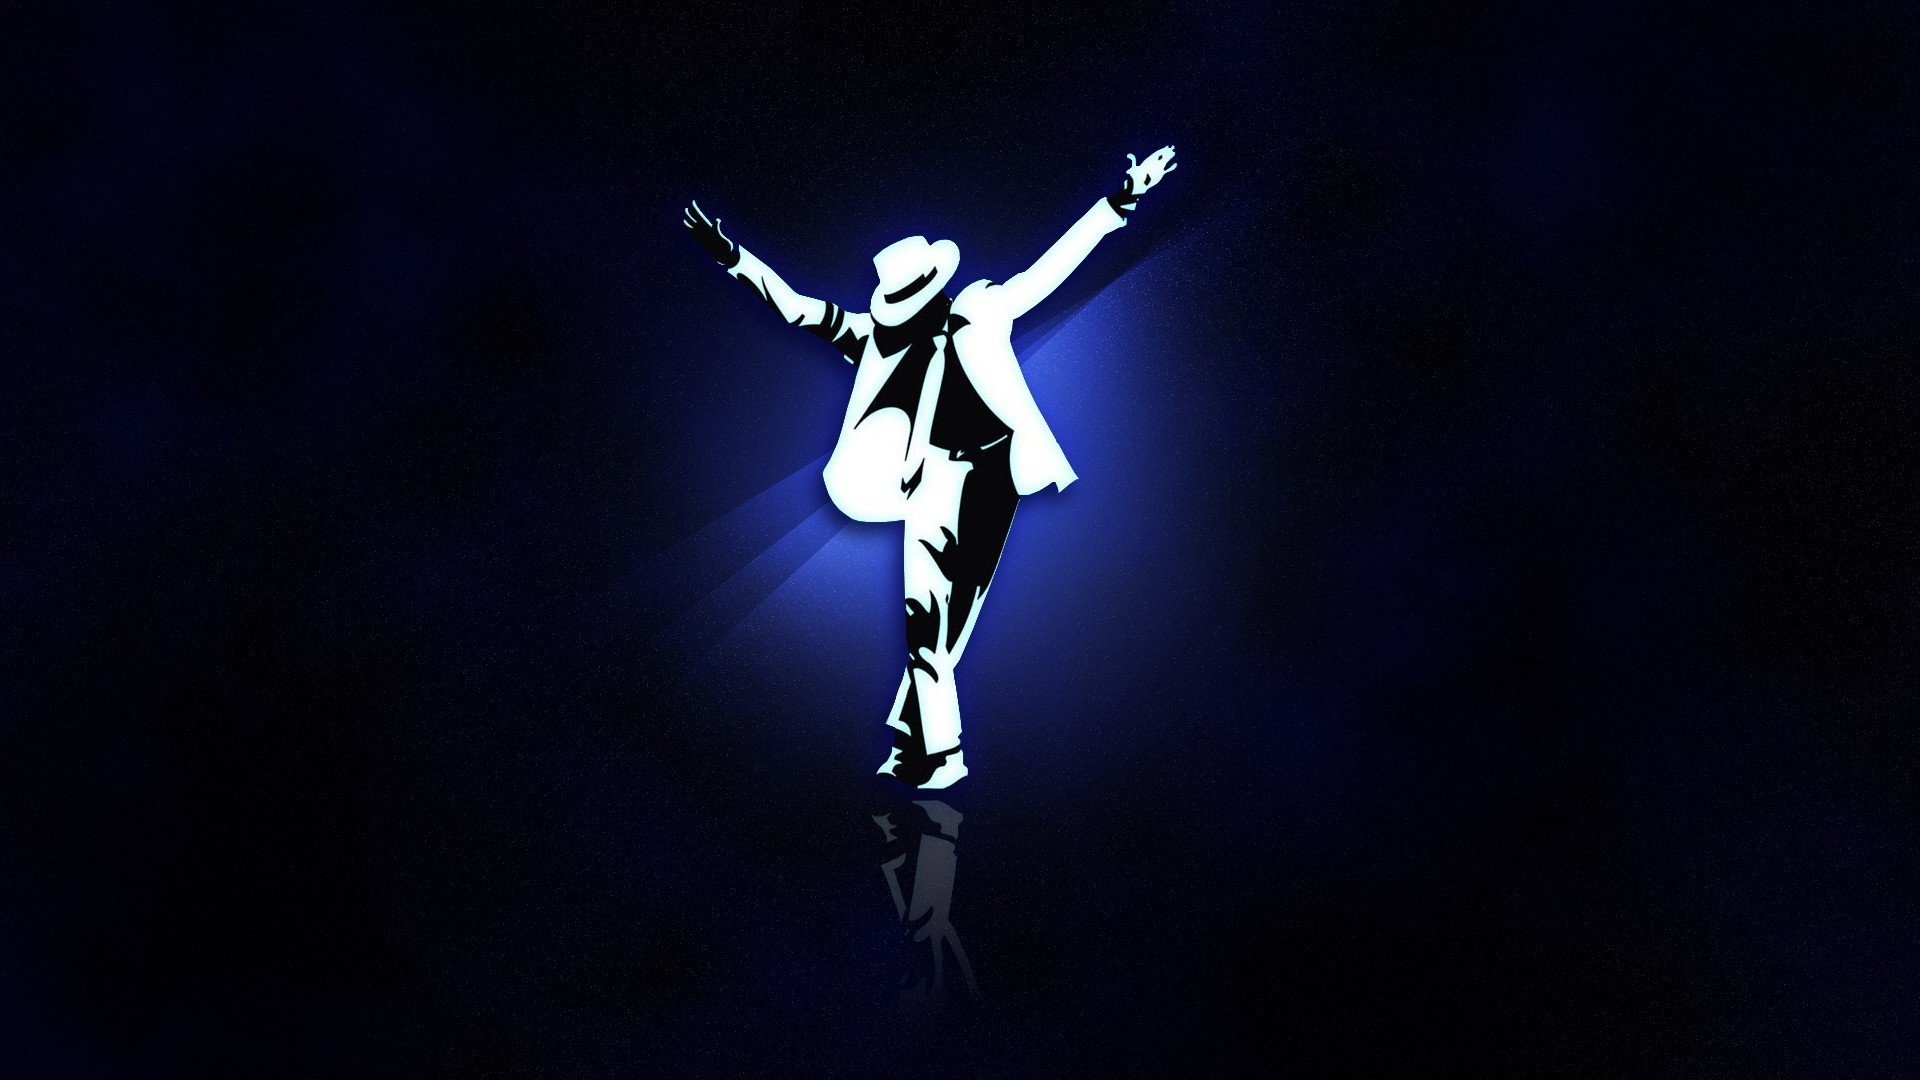 Hd wallpaper high resolution - Michael Jackson Wallpaper Michael Jackson Wallpaper Michael Jackson High Quality Wallpapers